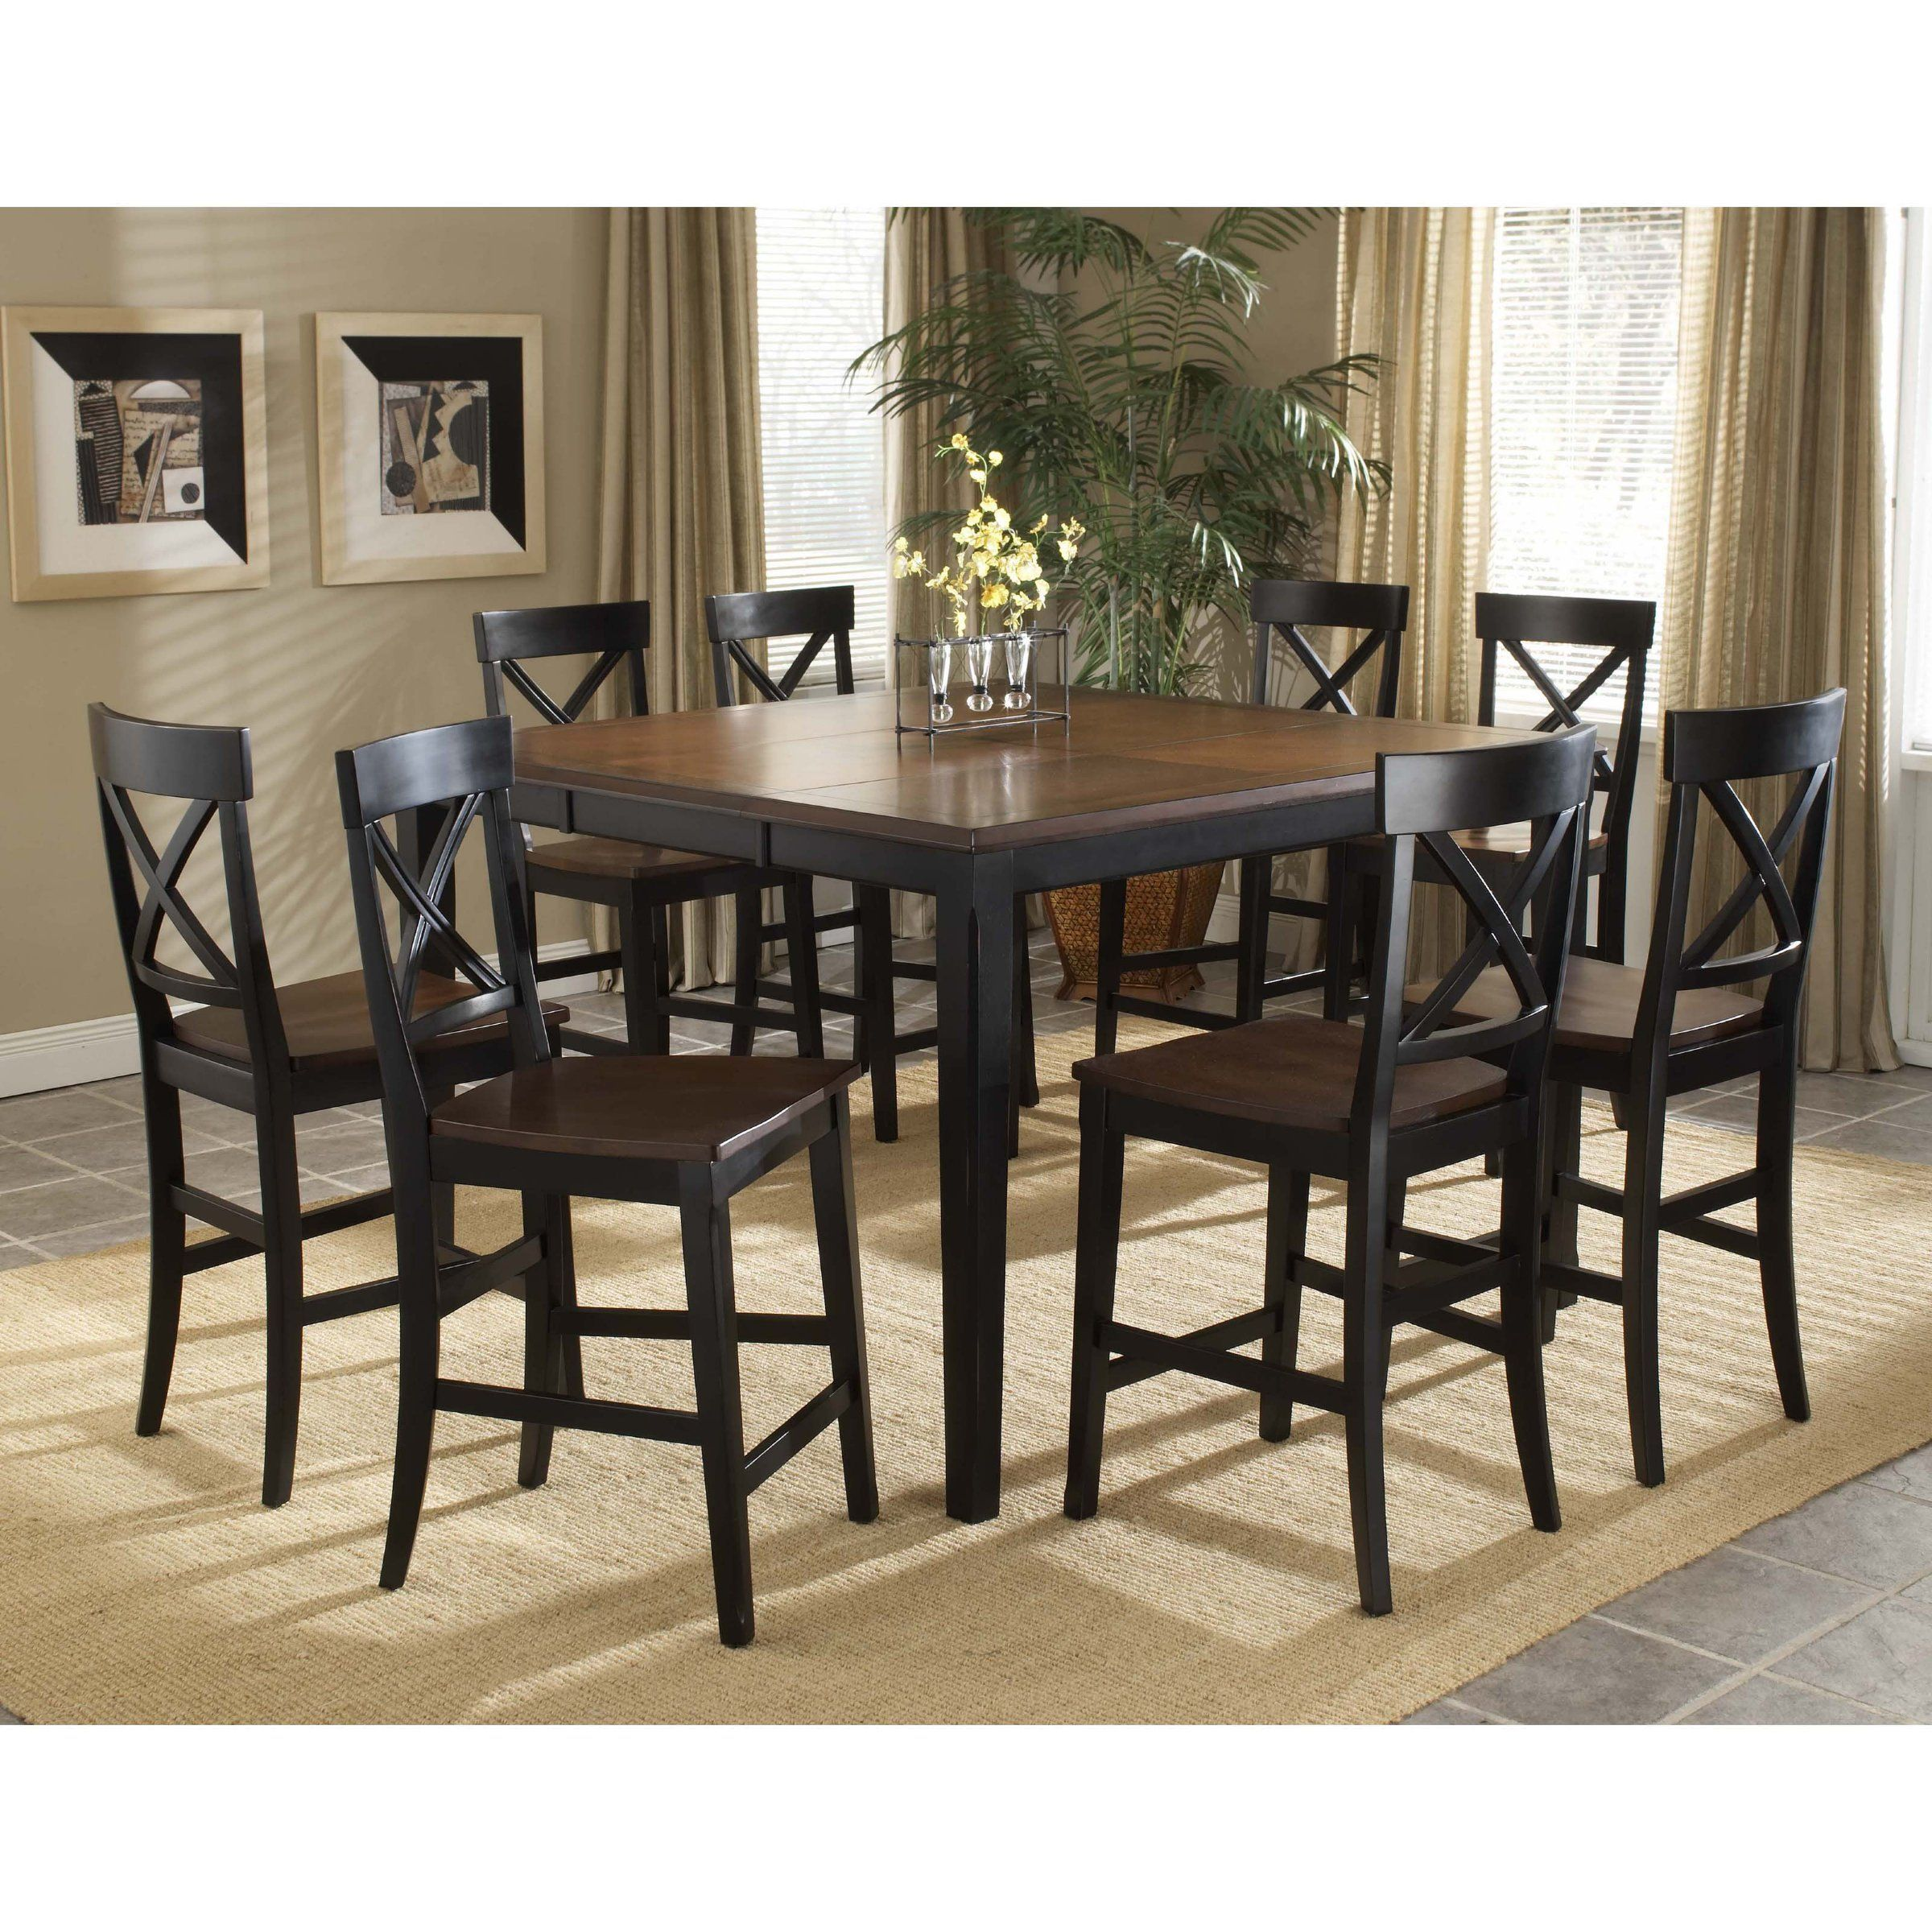 Englewood 9 Piece Gathering Table Dining Set   Dining Table Sets At  Hayneedle #pubsetkitchendiningrooms